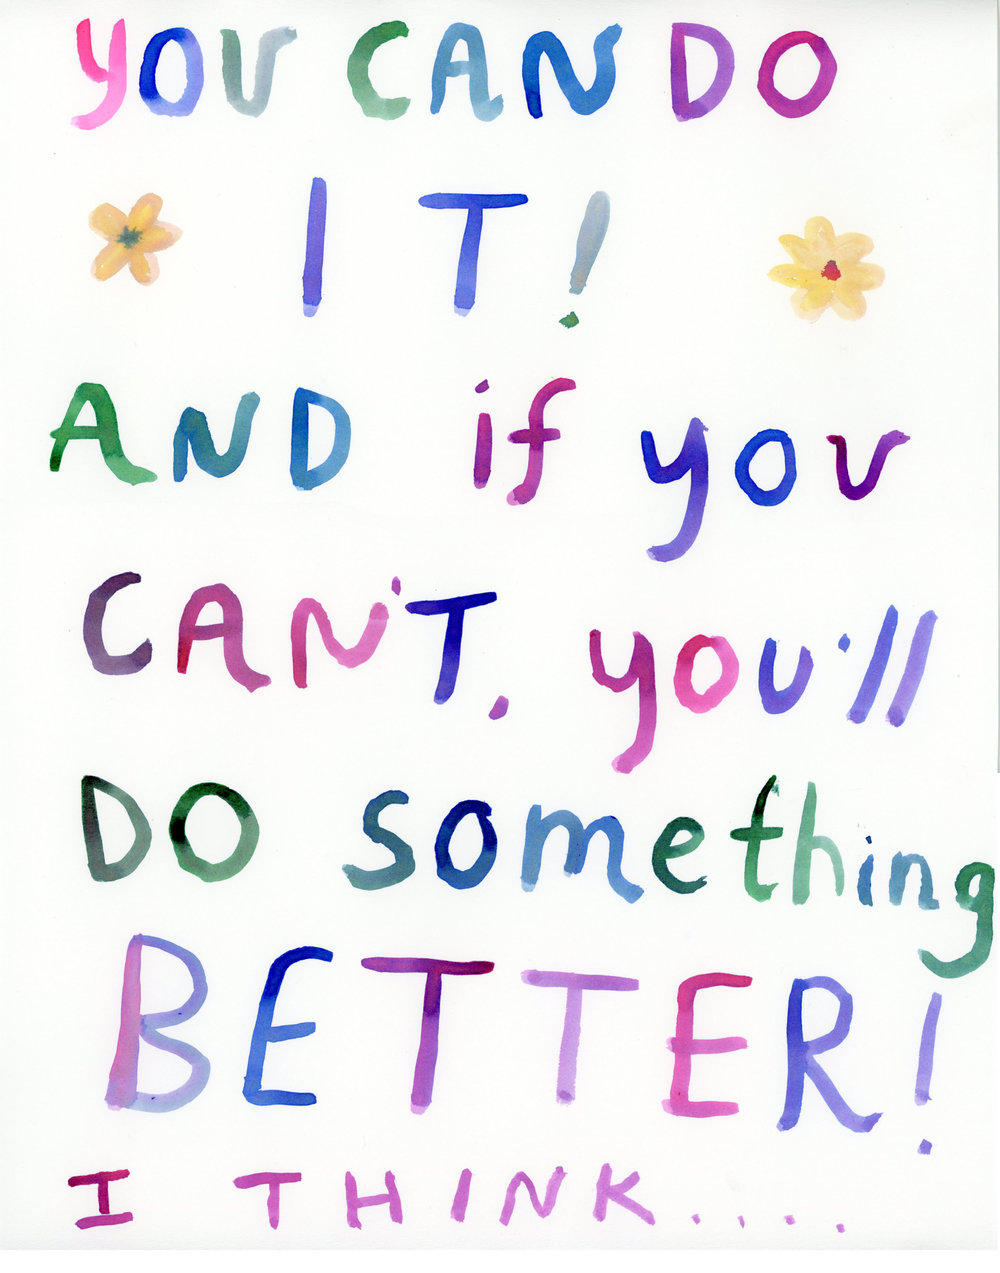 do something better sign068.jpg